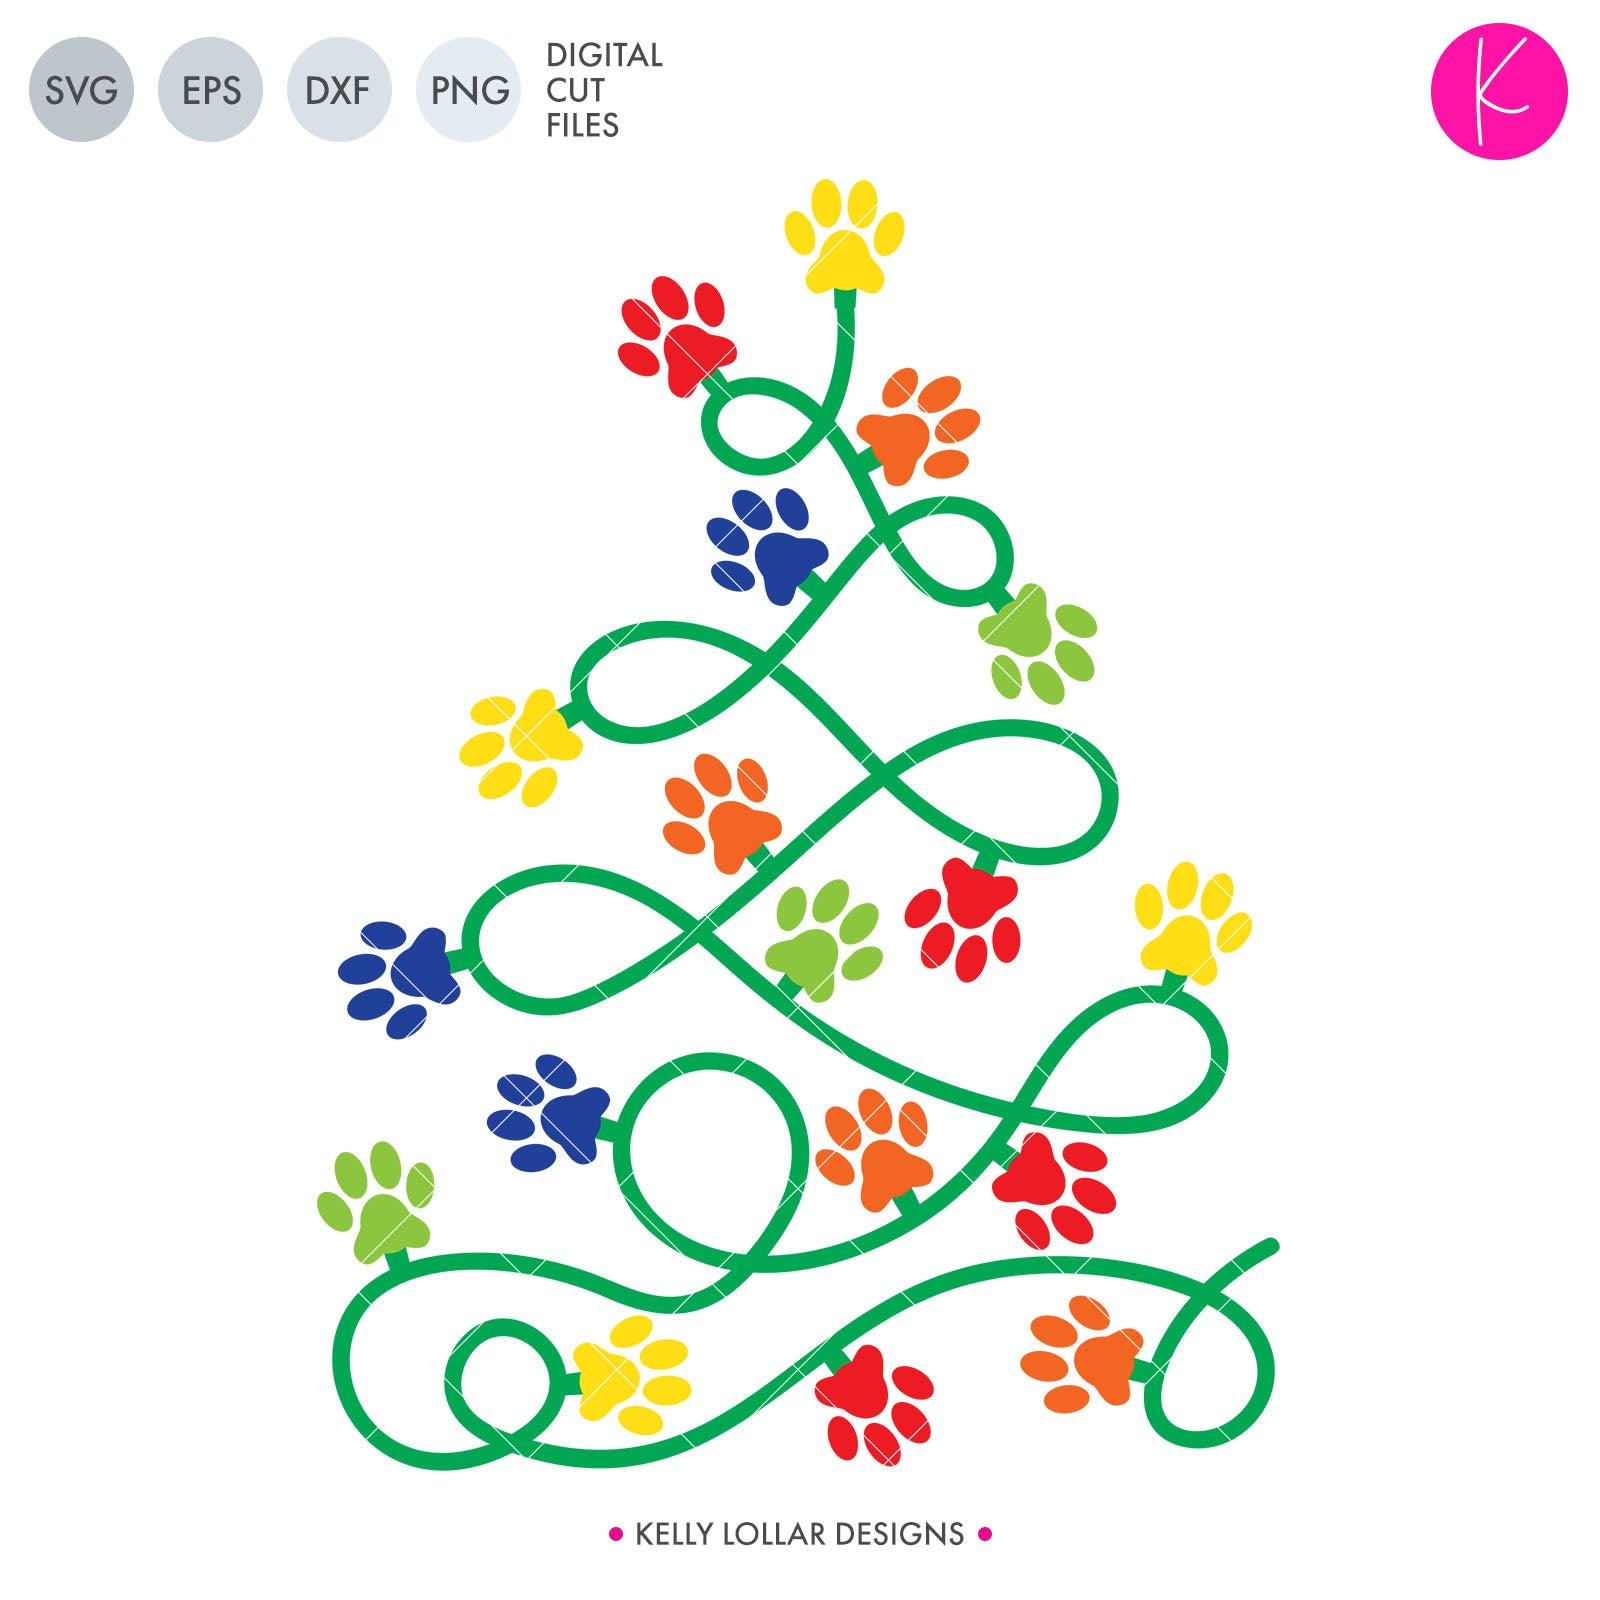 Paw Print Christmas Tree Svg Cut File Kelly Lollar Designs Free for commercial use no attribution required high quality images. usd